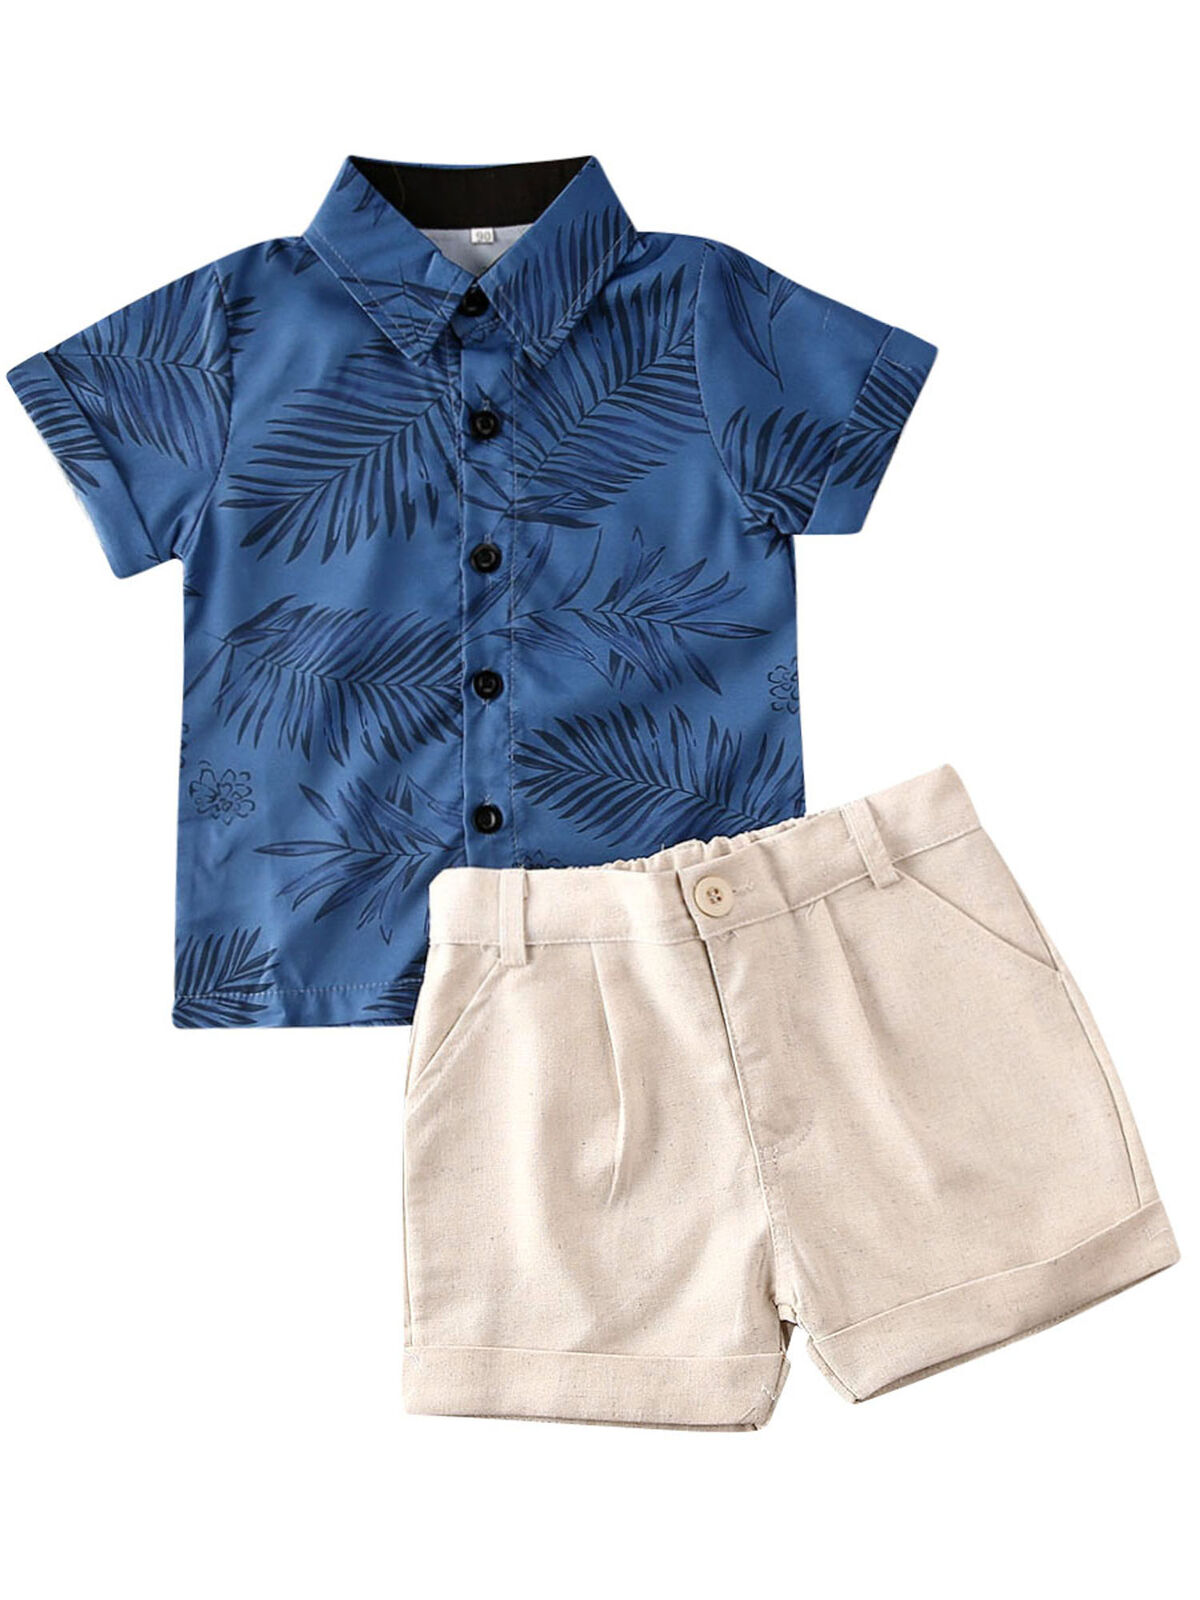 Toddler Newborn Kids Baby Boys Clothes T-shirt Tops+Short Pants Outfits Set NEW